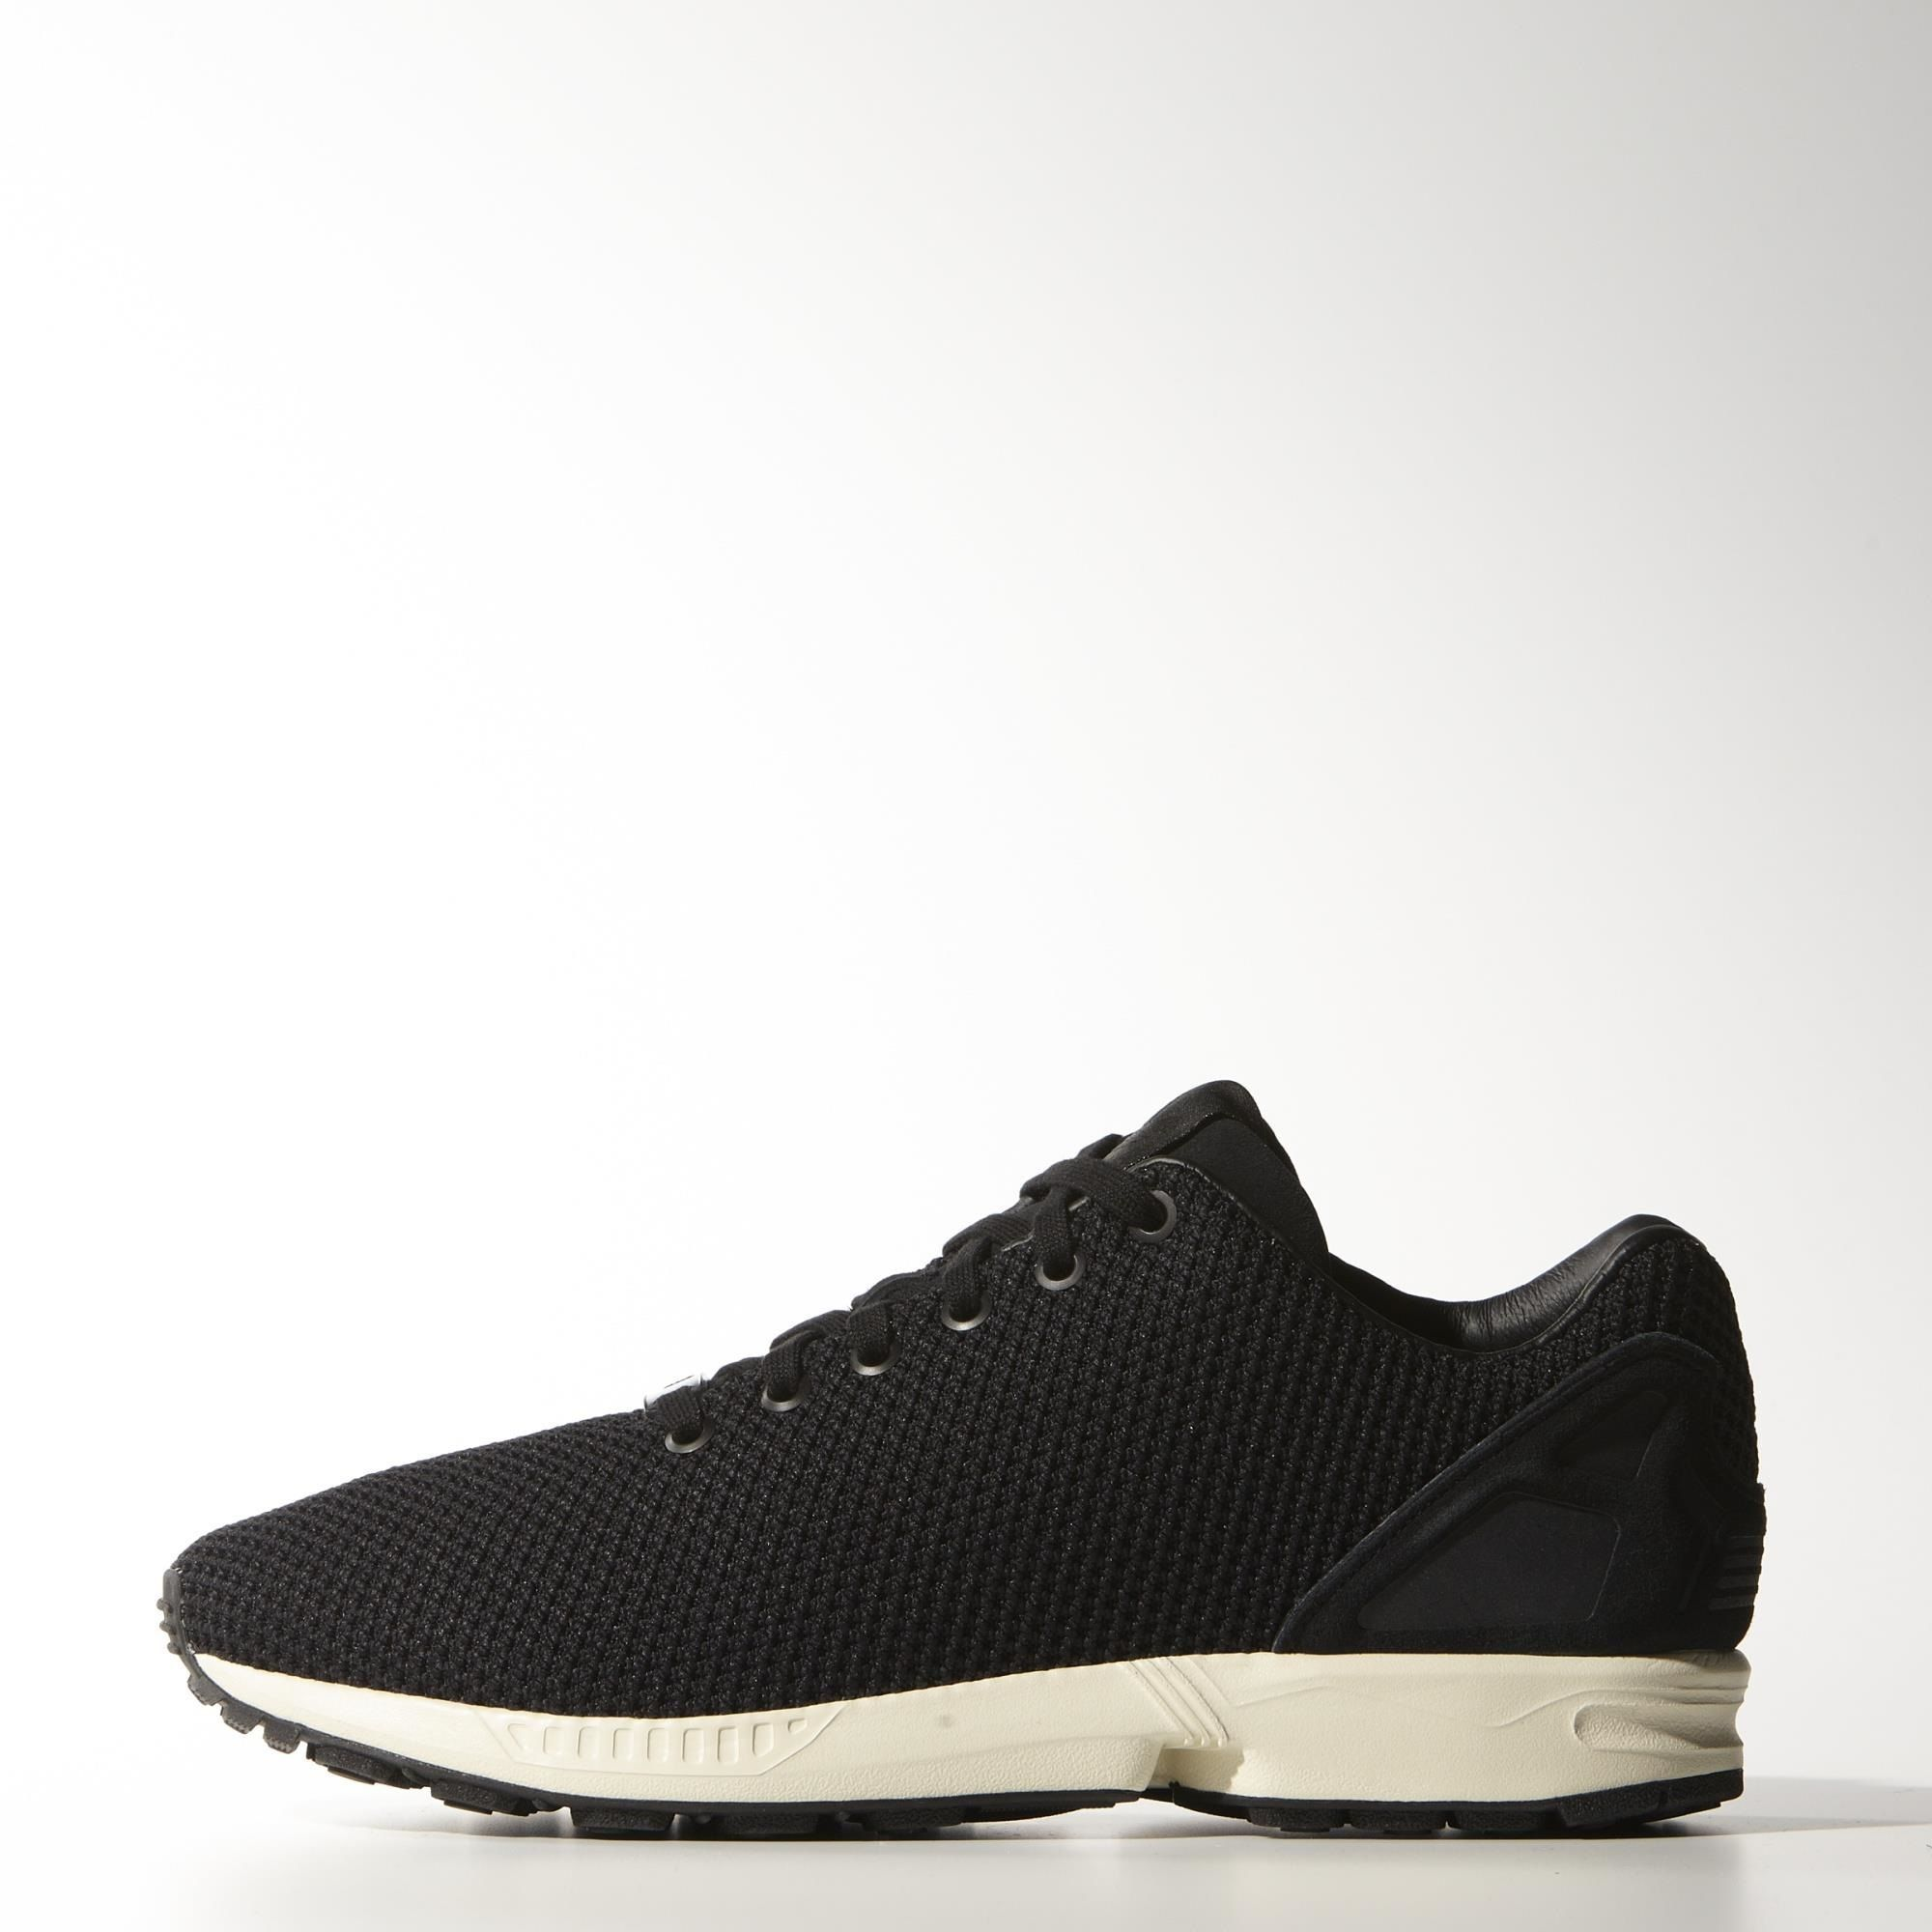 adidas zx flux triple black mens nz